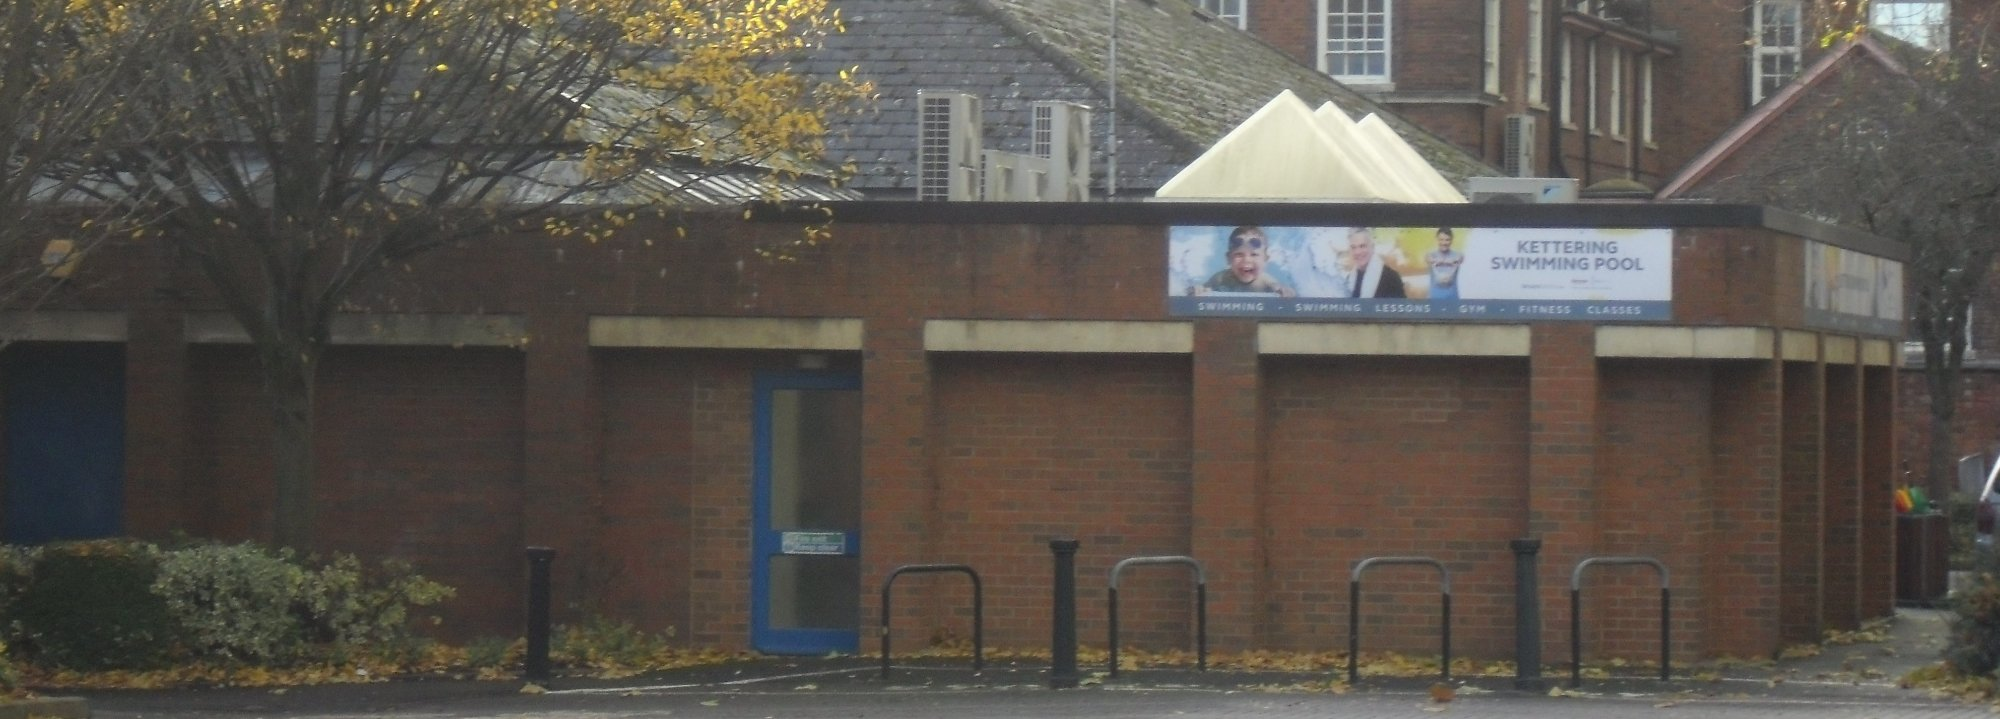 Kettering Swimming Pool